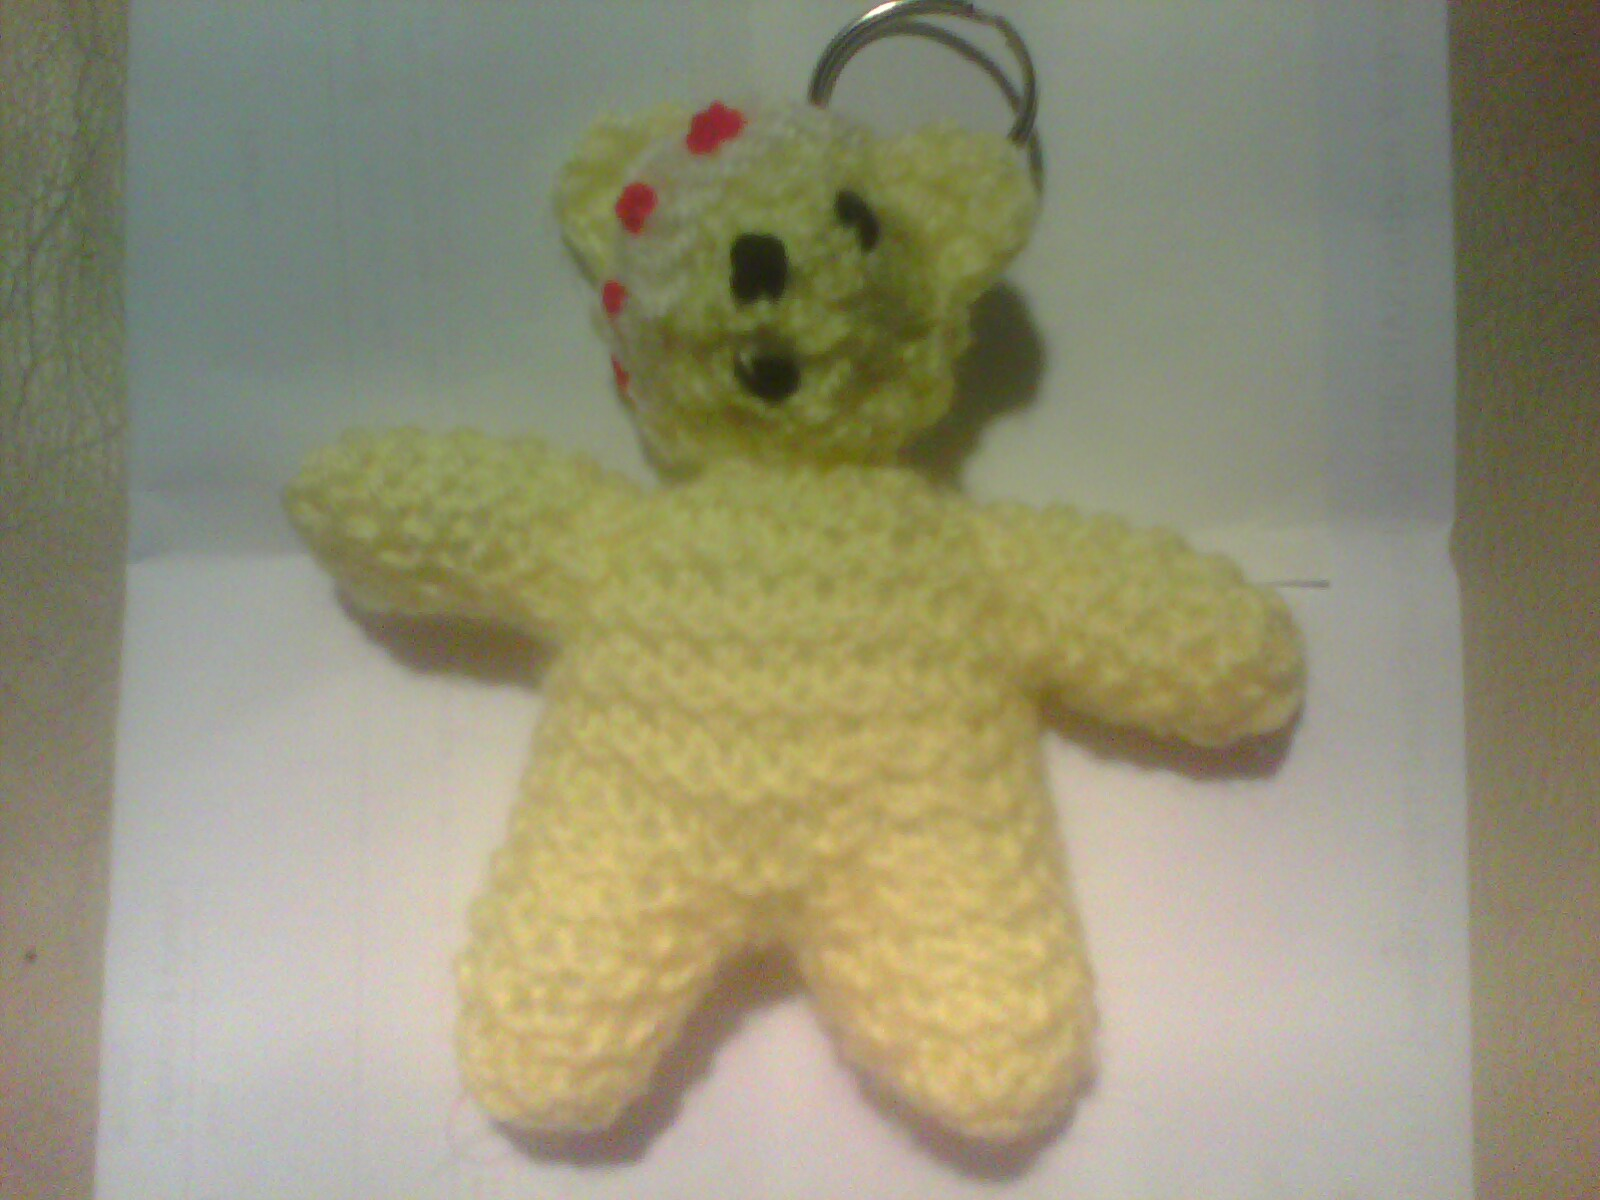 Pudsey Bear Knitting Pattern : HANDMADE BY LILACANGLIA: Pudsey Bear Keyrings - for sale - money goes to CHIL...